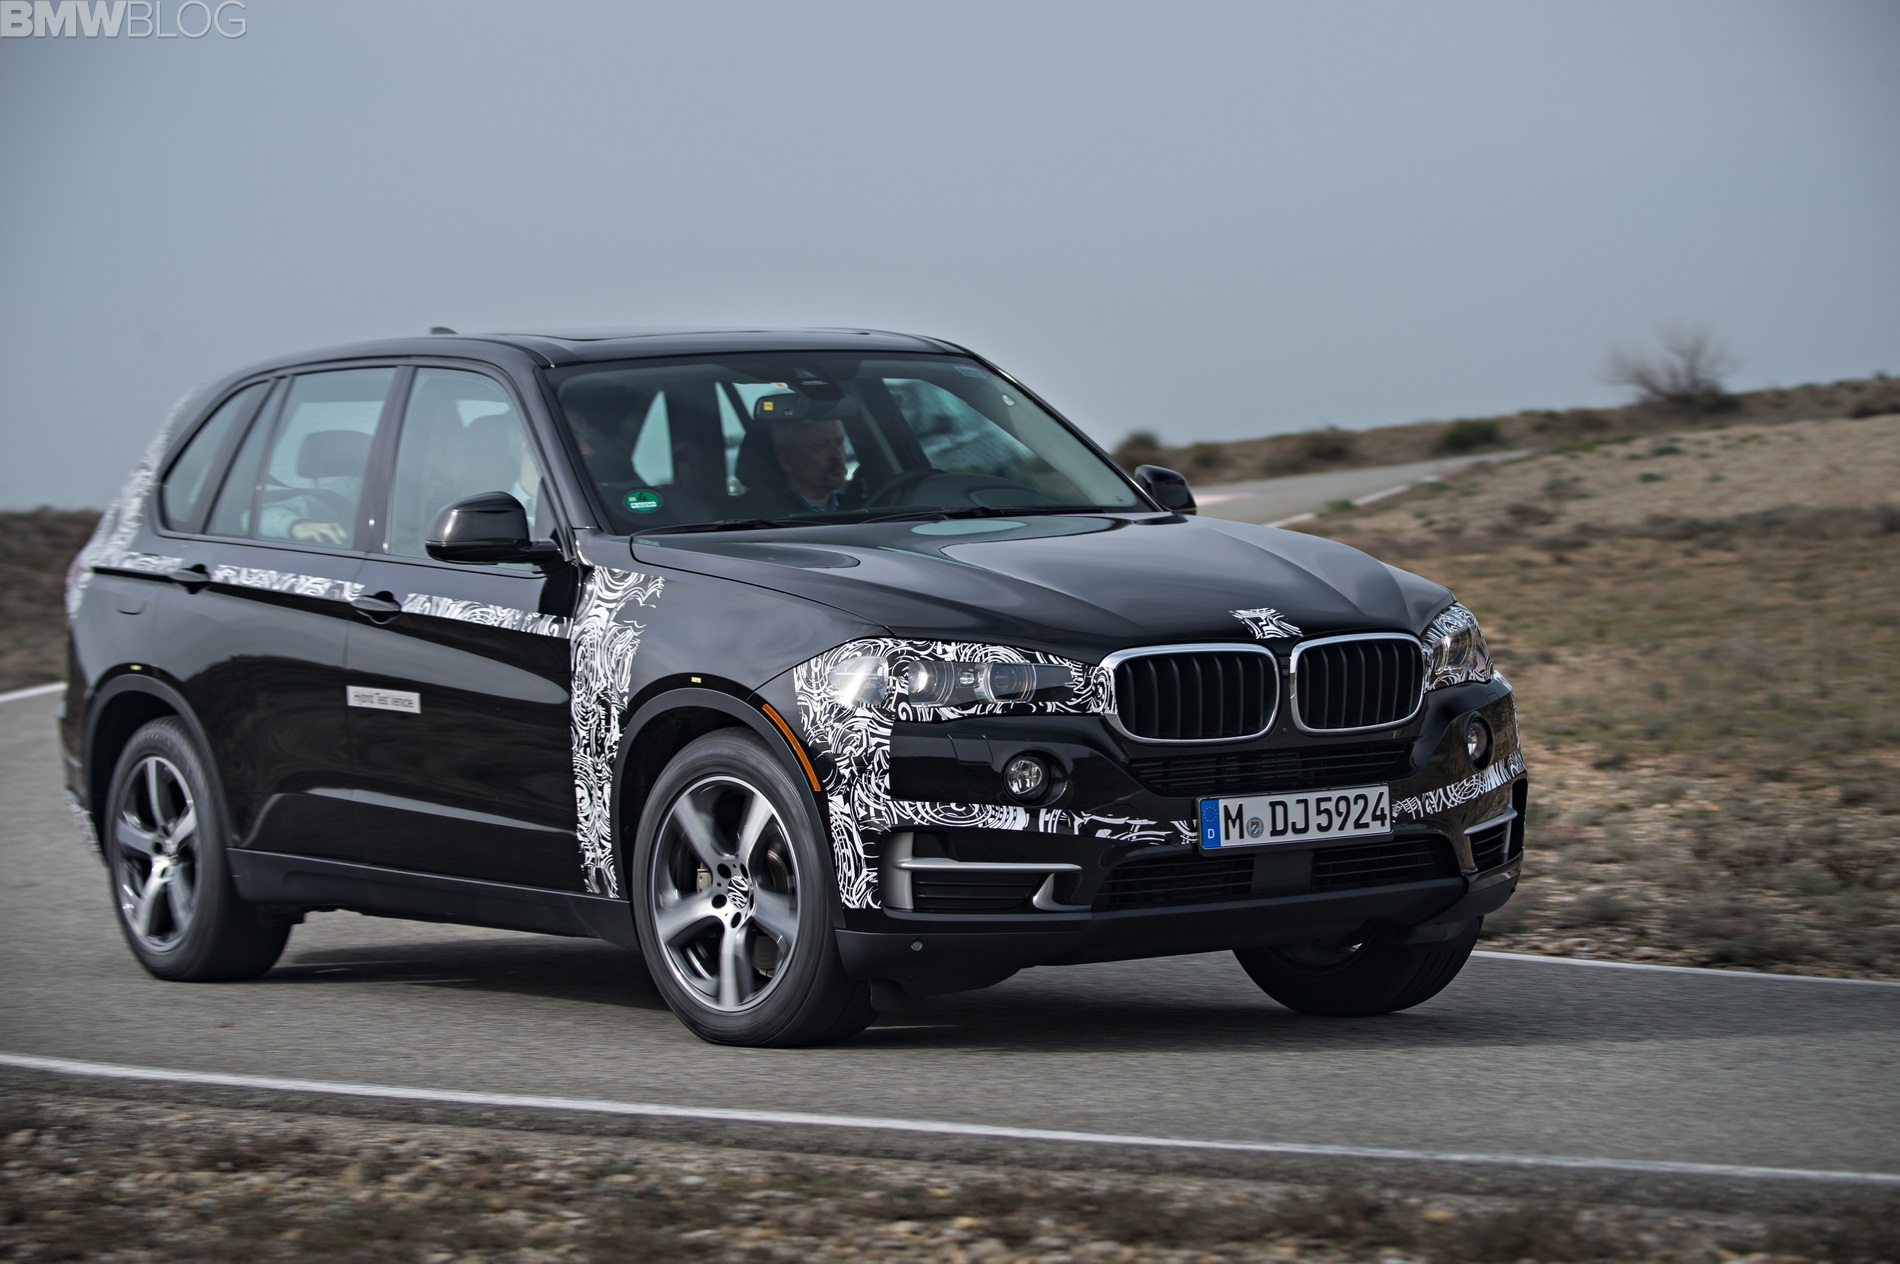 2016 bmw x5 edrive hybrid spied testing in the u s. Black Bedroom Furniture Sets. Home Design Ideas